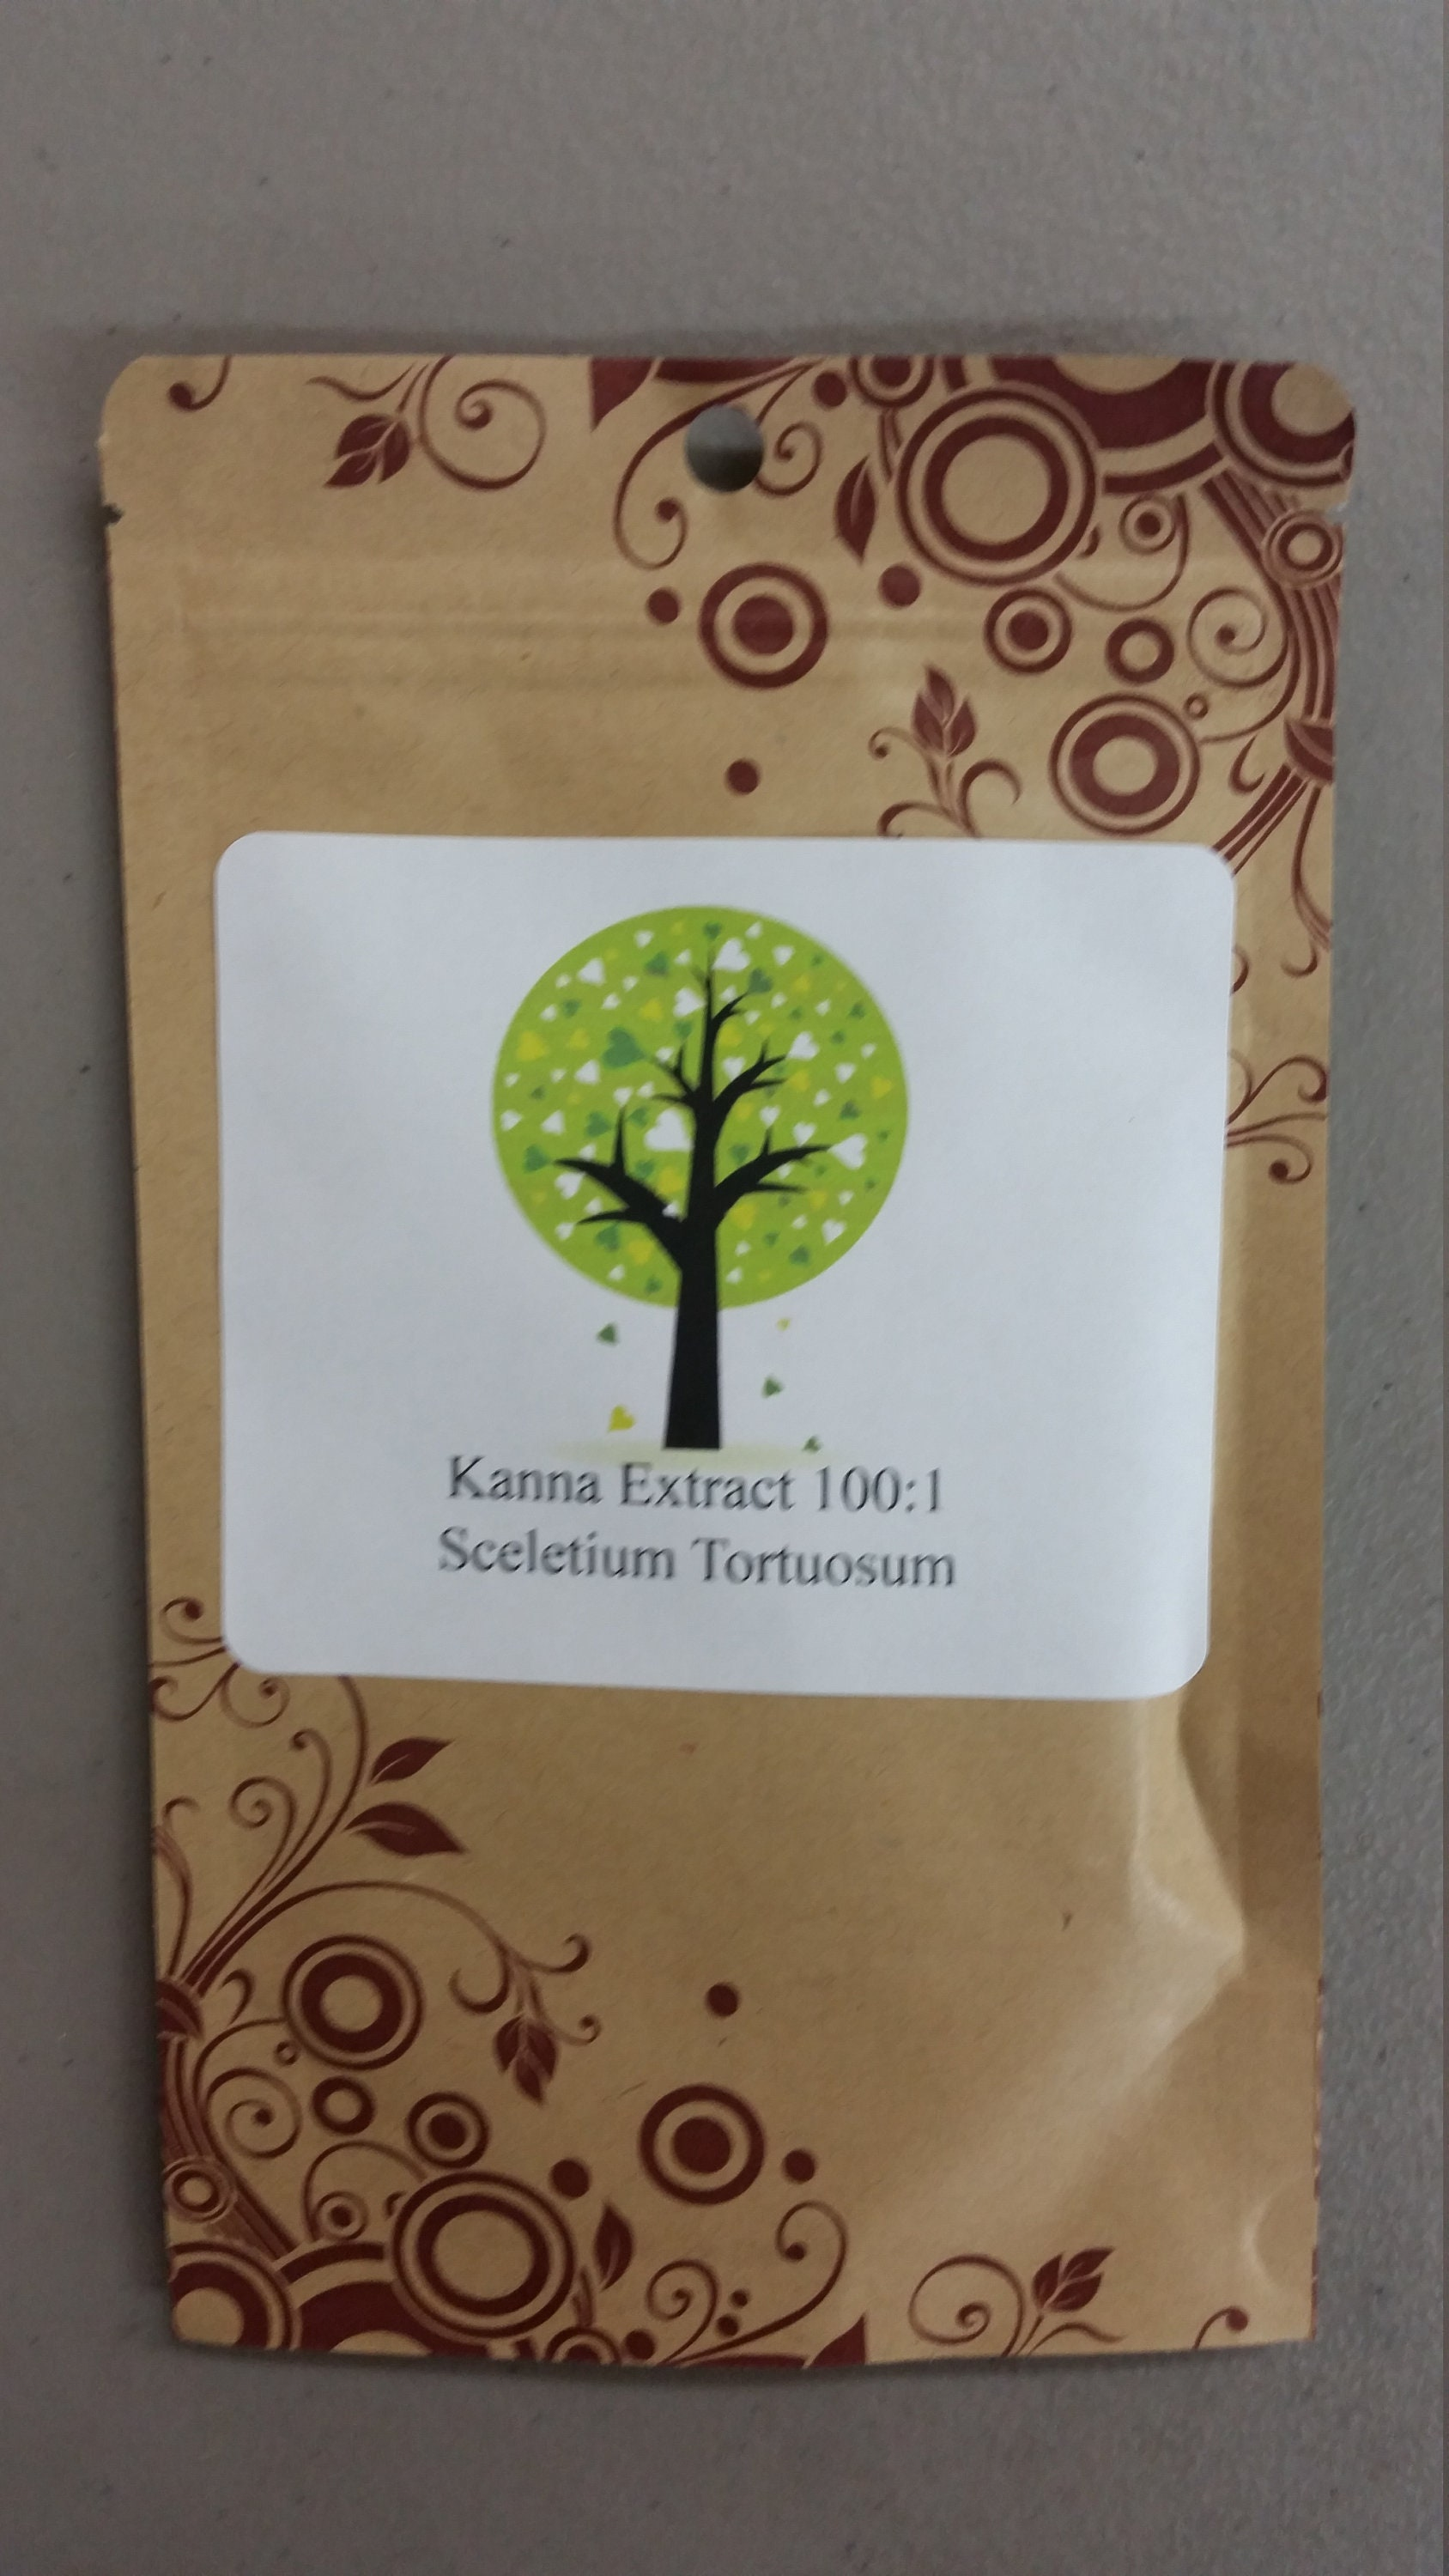 Billy's Botanicals 50 grams Kanna 100:1 extract Sceletium